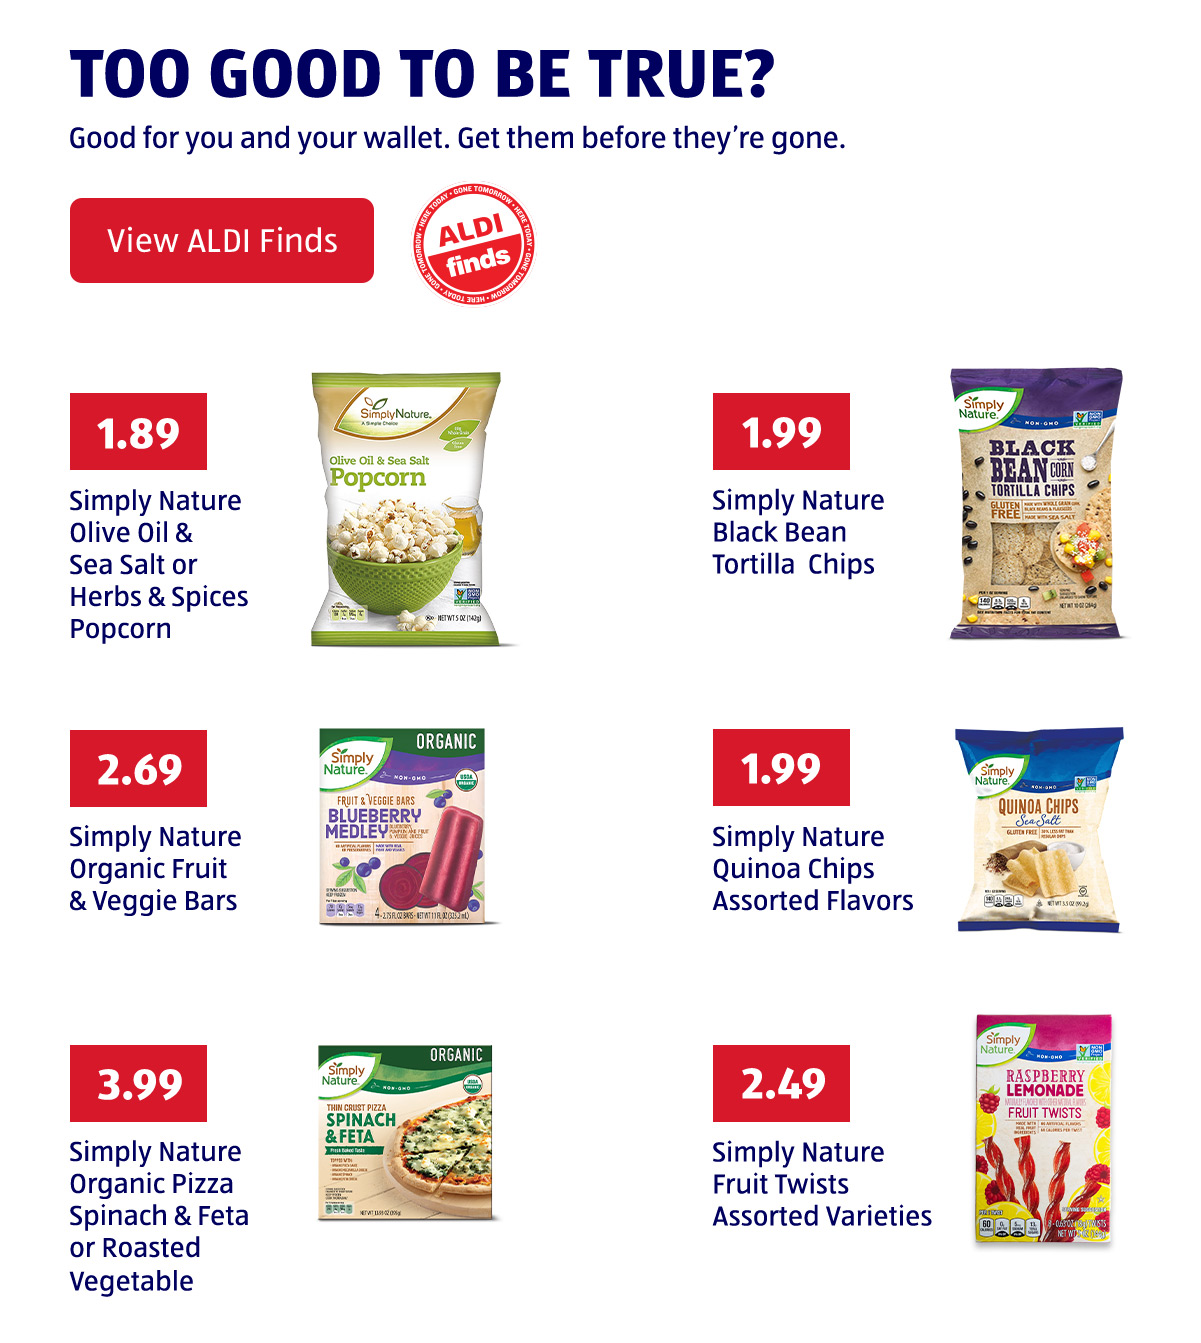 ALDI - Better snacks at better prices now at ALDI